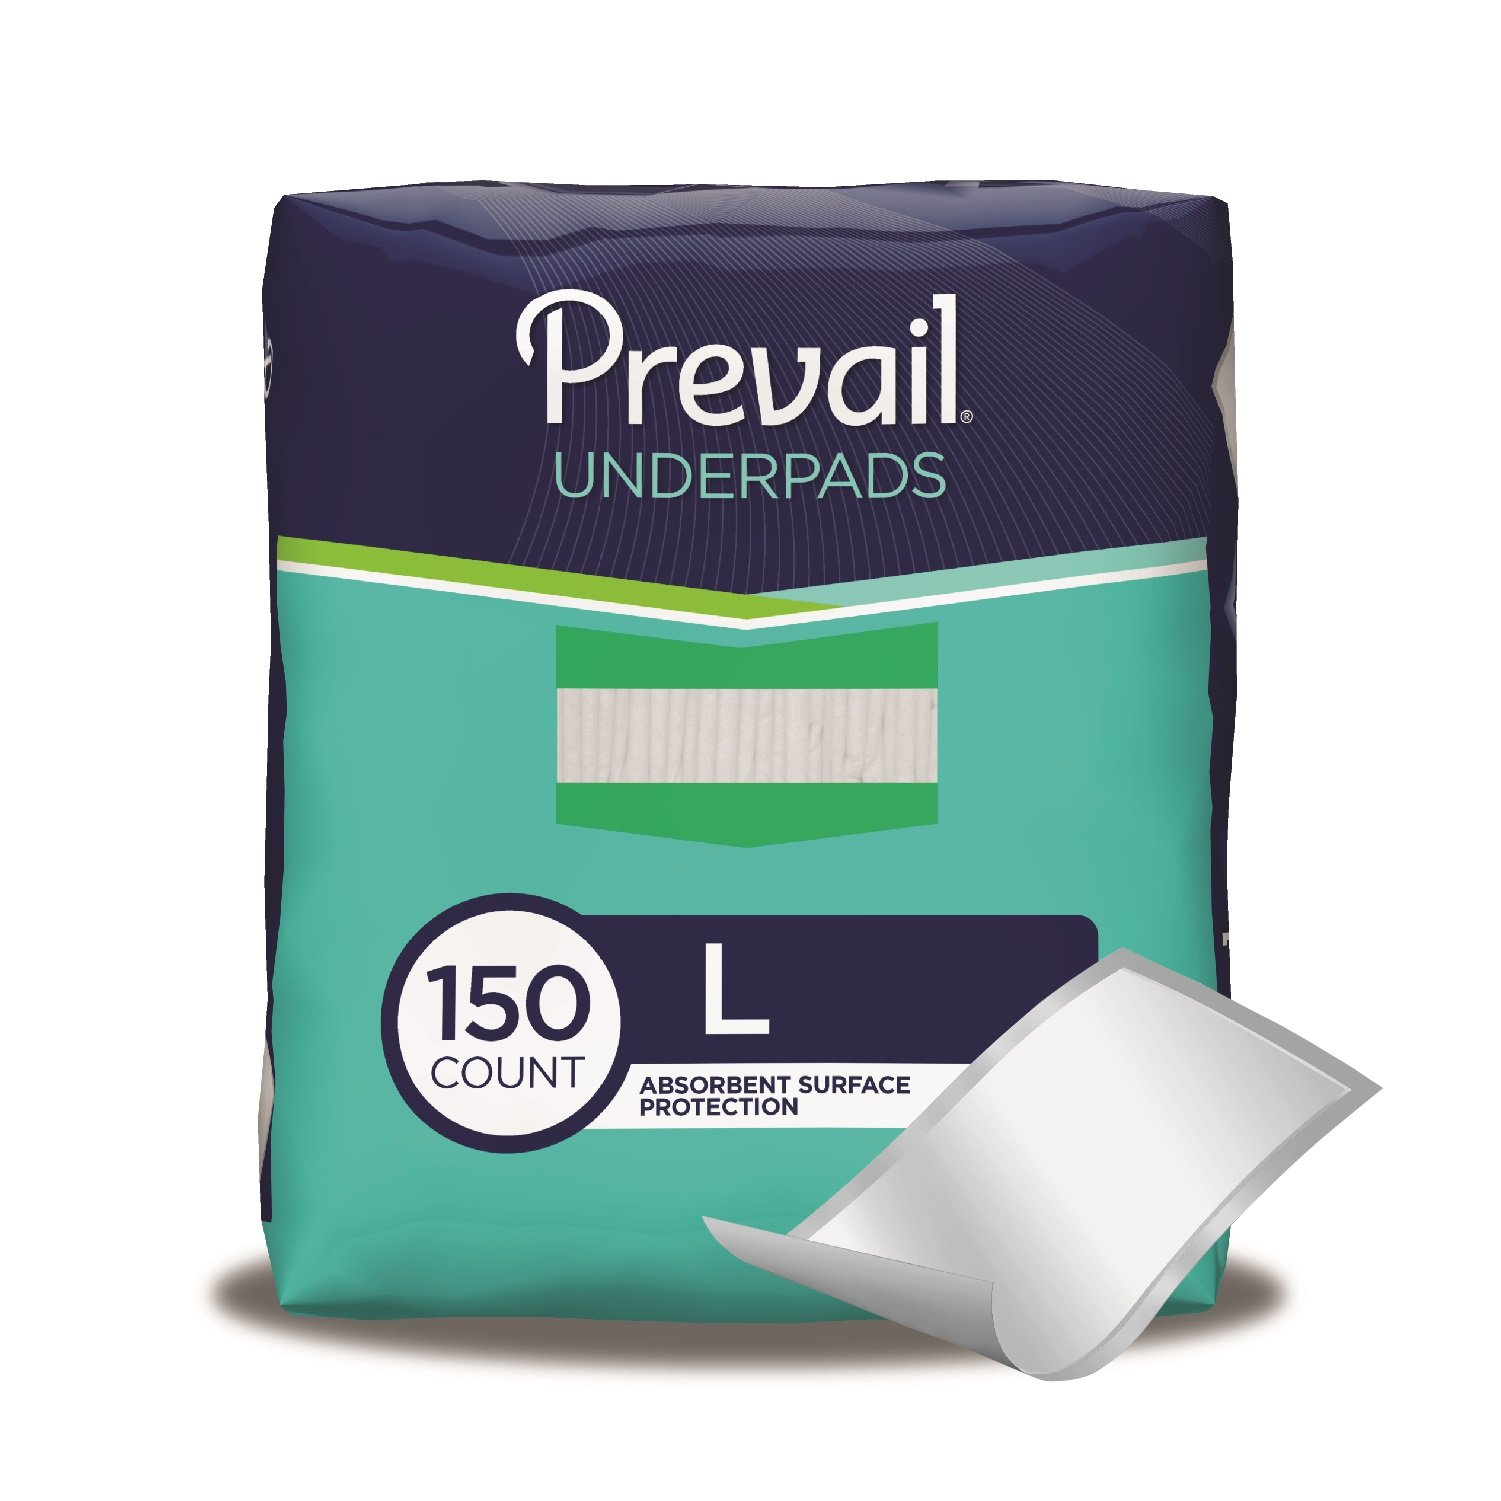 Prevail Fluff Underpads Large 150 Total Count (Packaging May Vary) Non-Slip Leakage